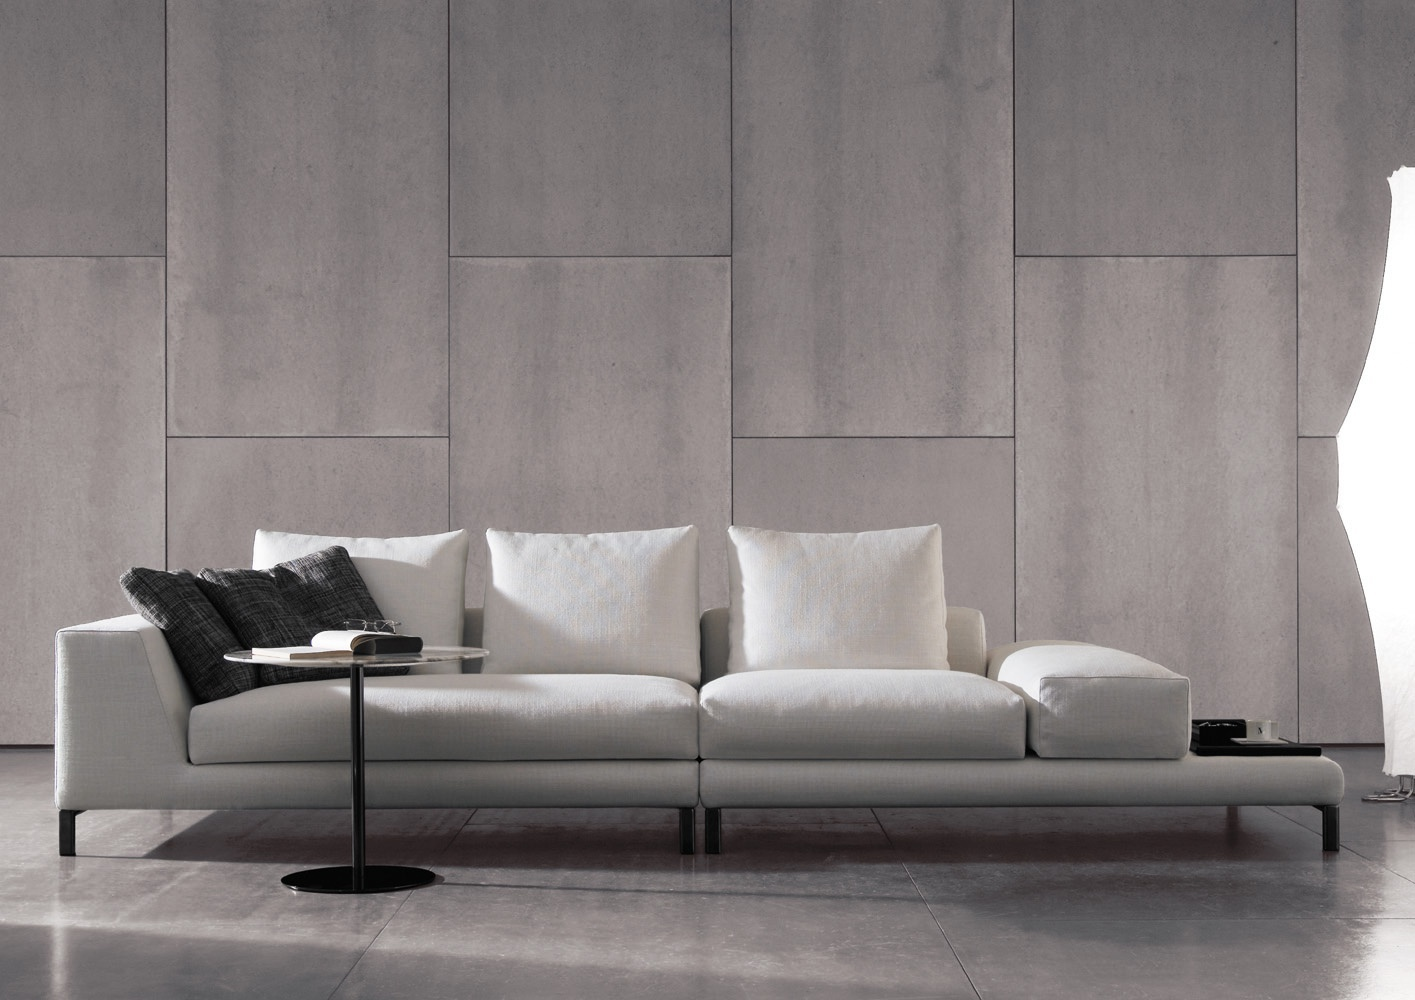 modular sofa to relax on hamilton islands minotti luxury furniture mr. Black Bedroom Furniture Sets. Home Design Ideas